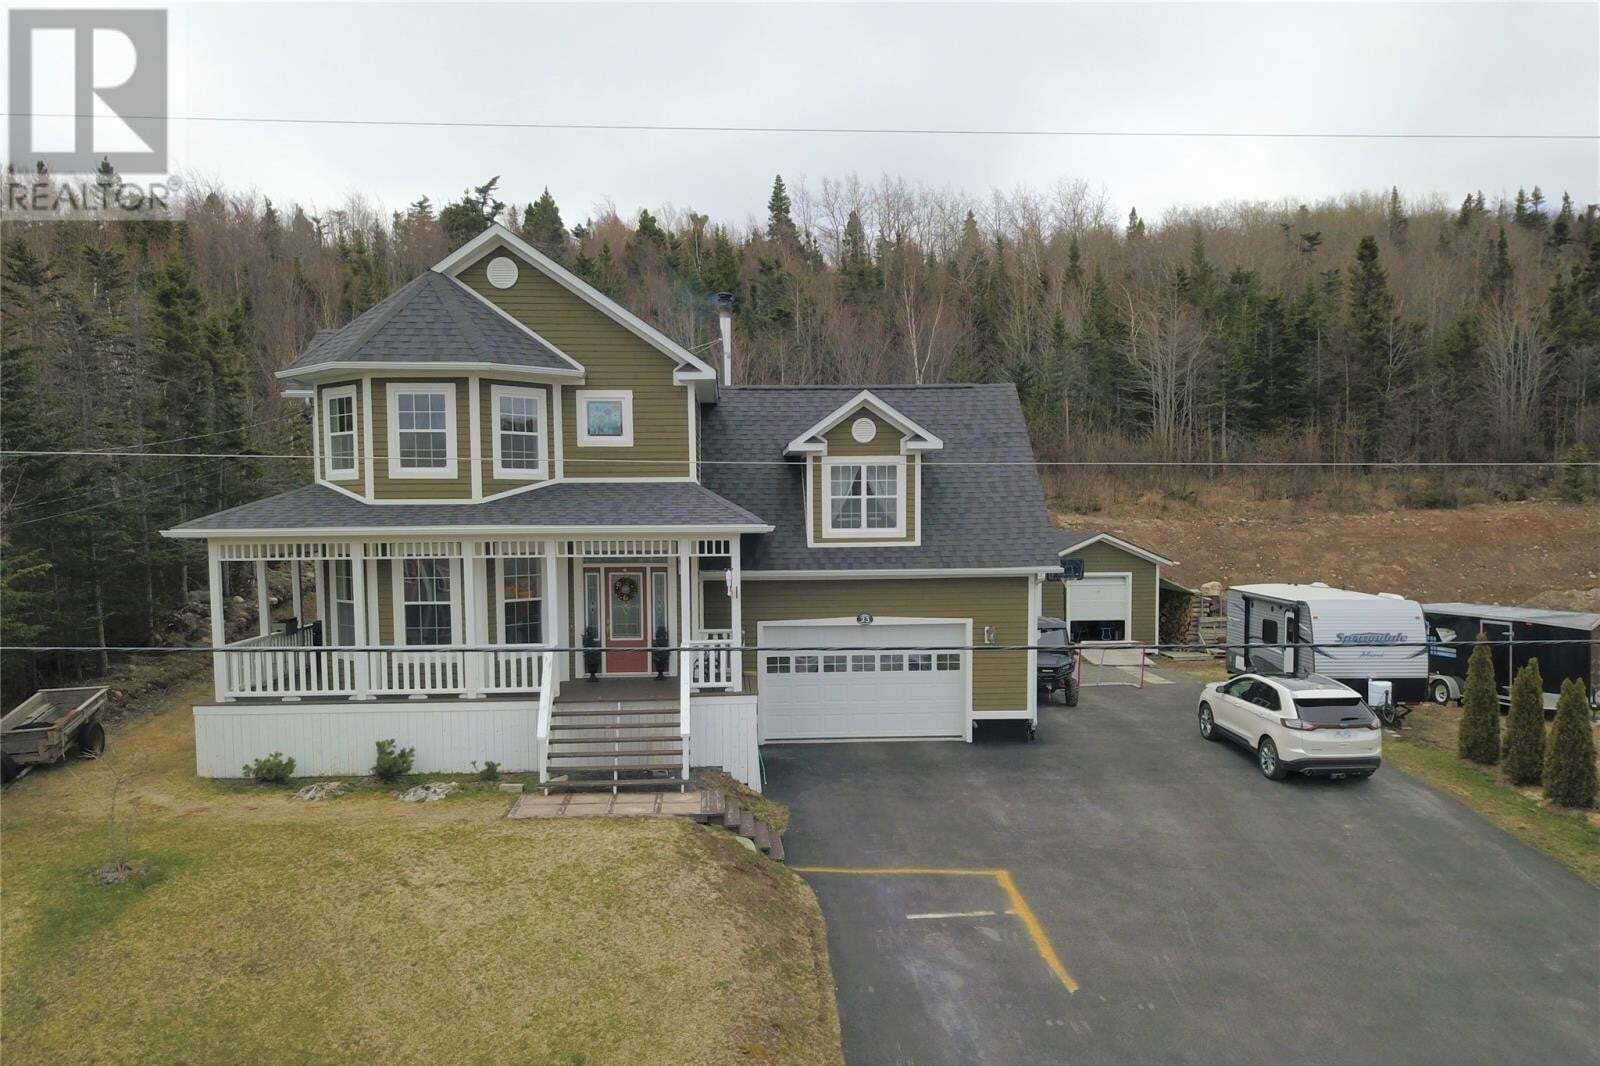 House for sale at 23 Clearwater Dr Clarenville Newfoundland - MLS: 1214479